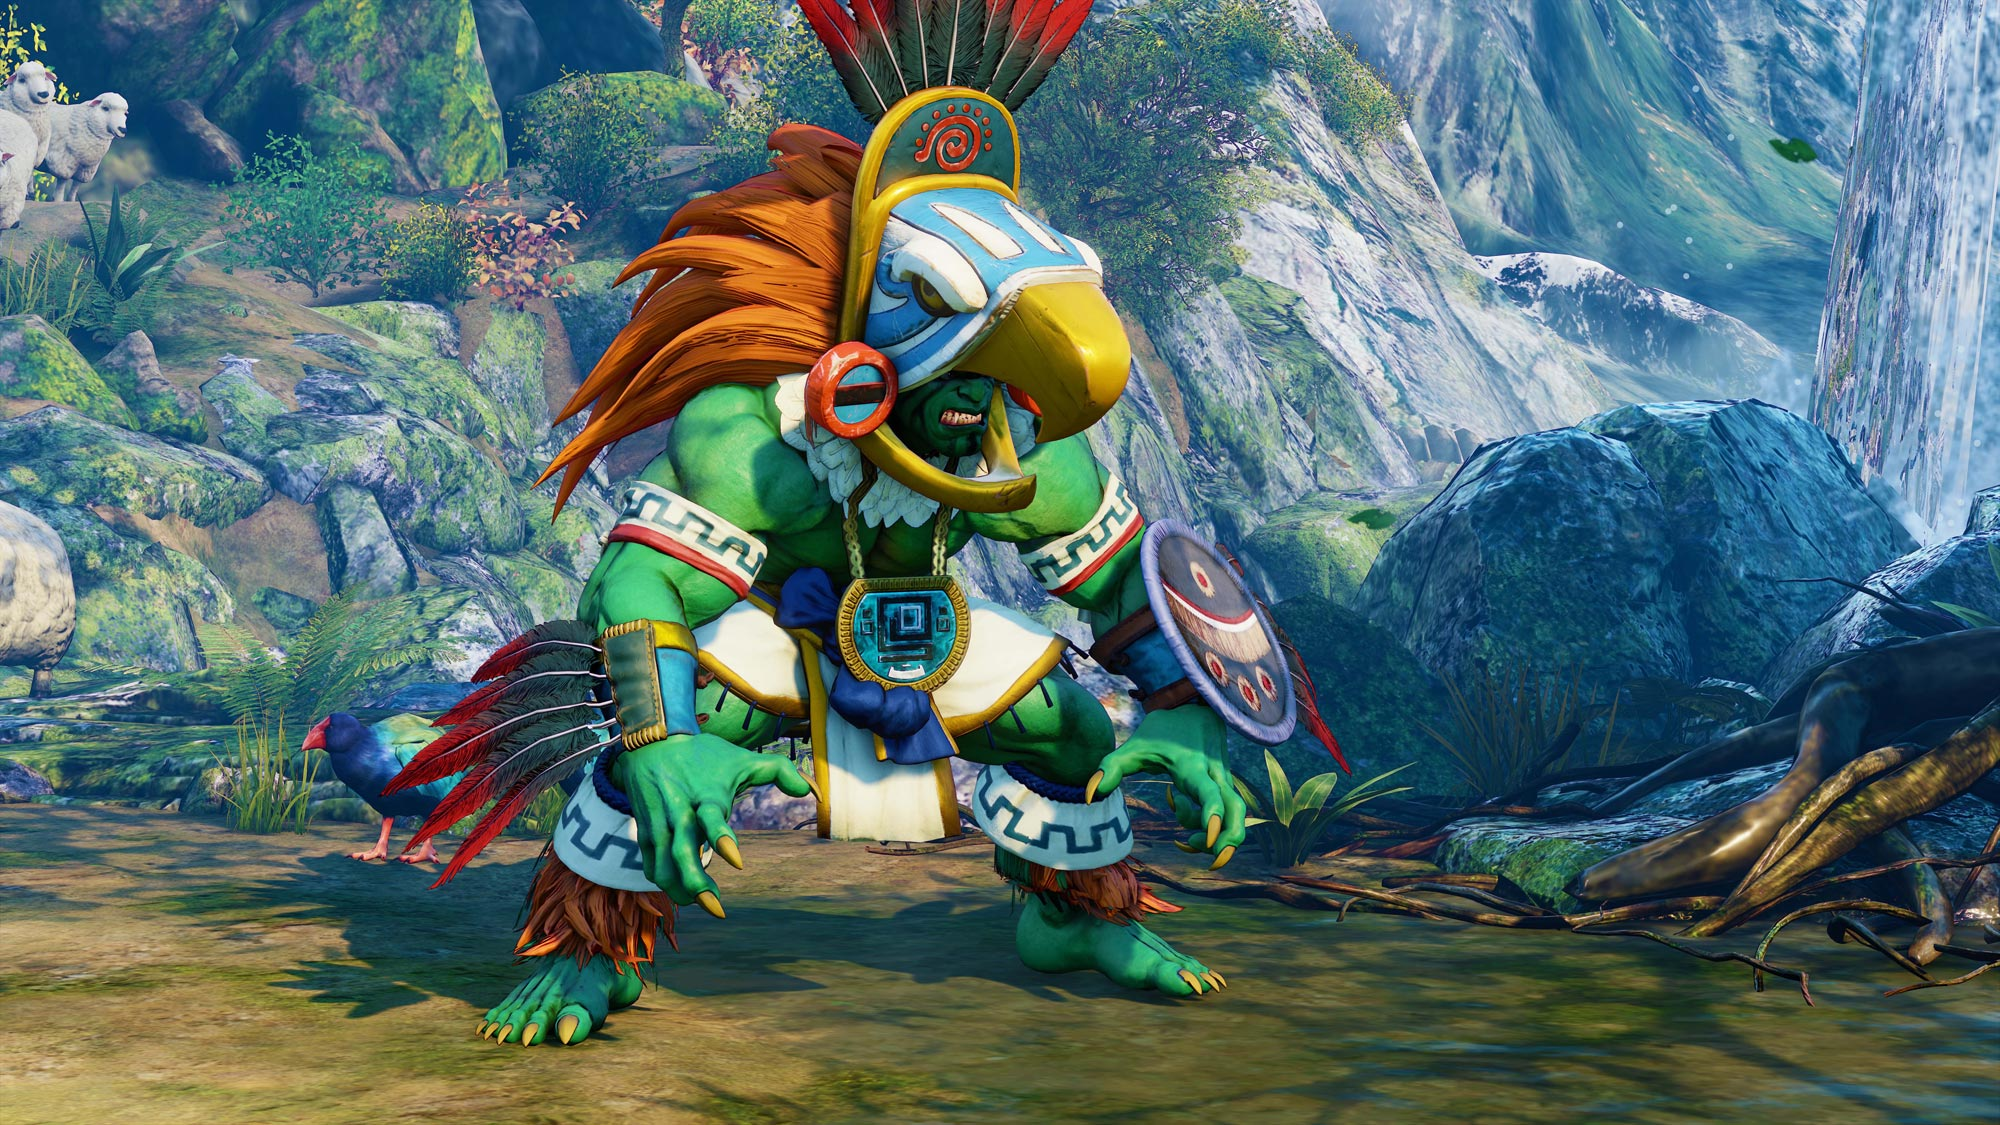 Blanka in Street Fighter 5: Arcade Edition 6 out of 11 image gallery